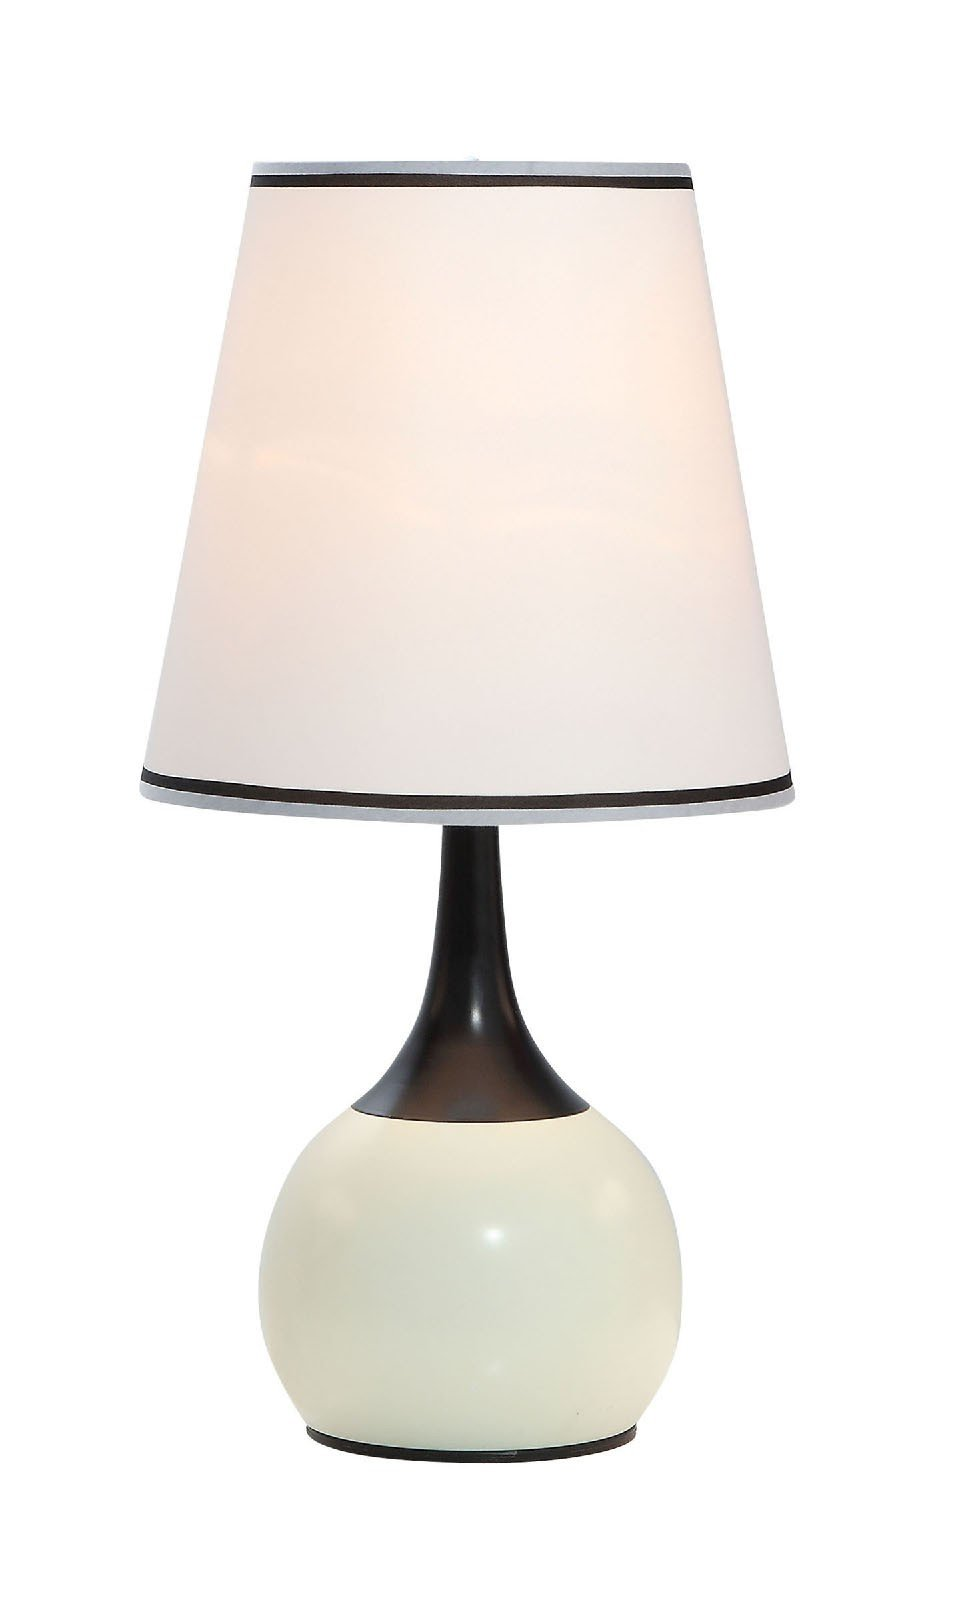 Furniture of America L9815PL White Touch Lamp Miscellaneous-Others